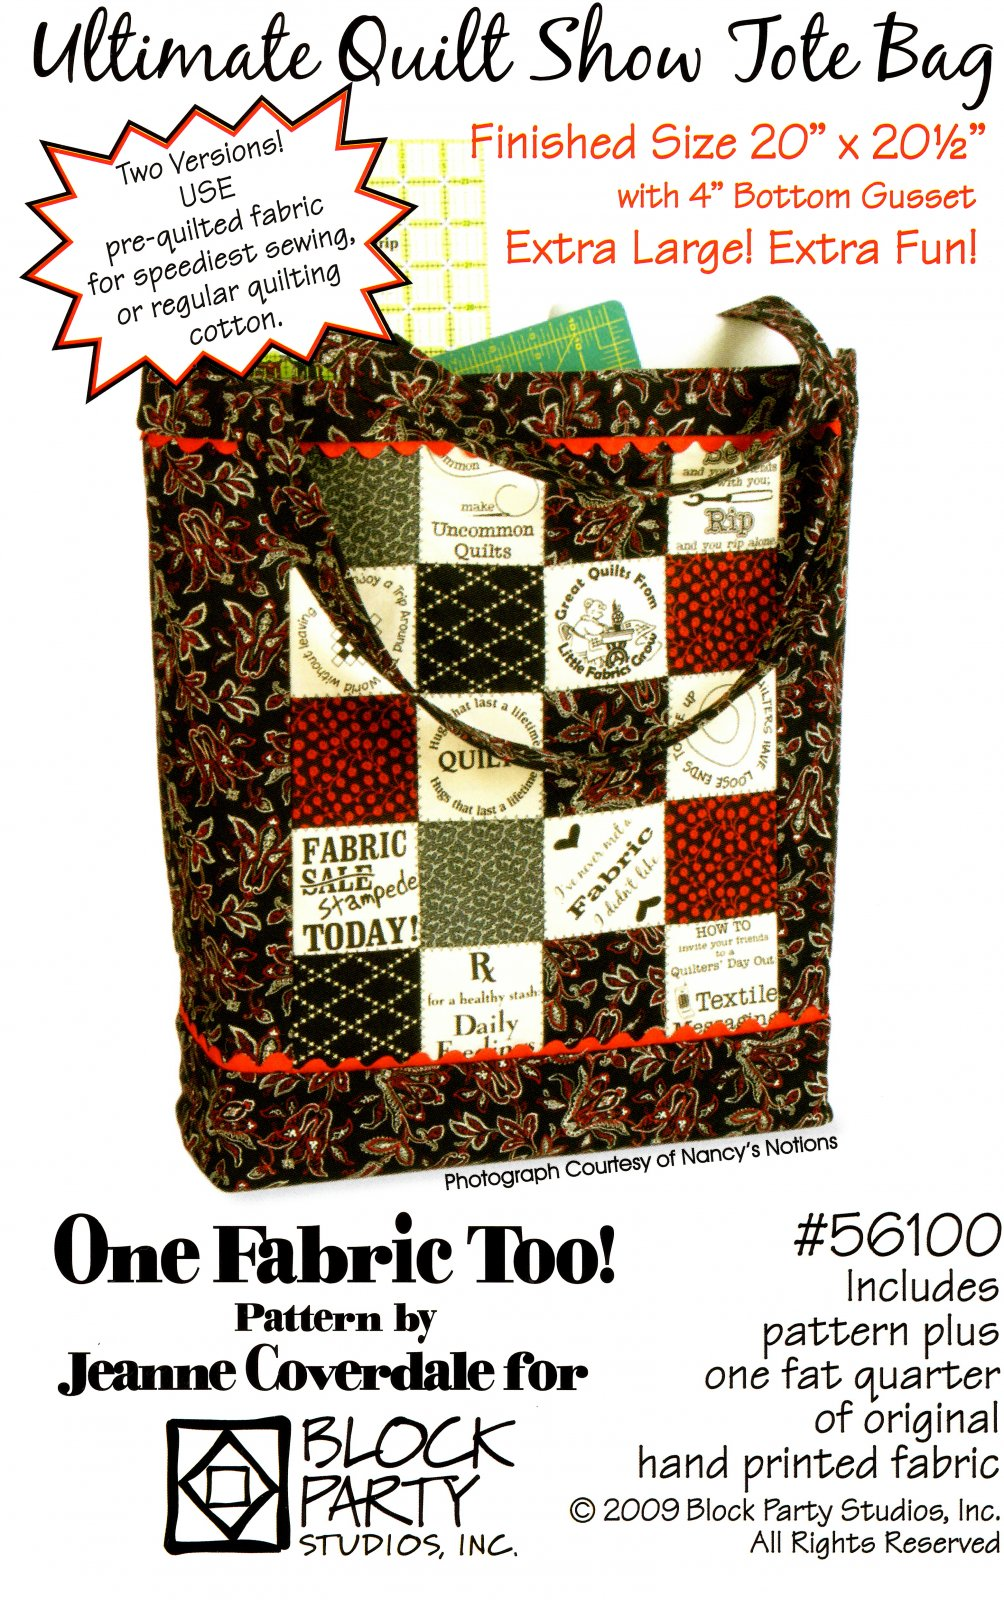 Ultimate Quilt Show Tote Bag with TQRT 2 Panel